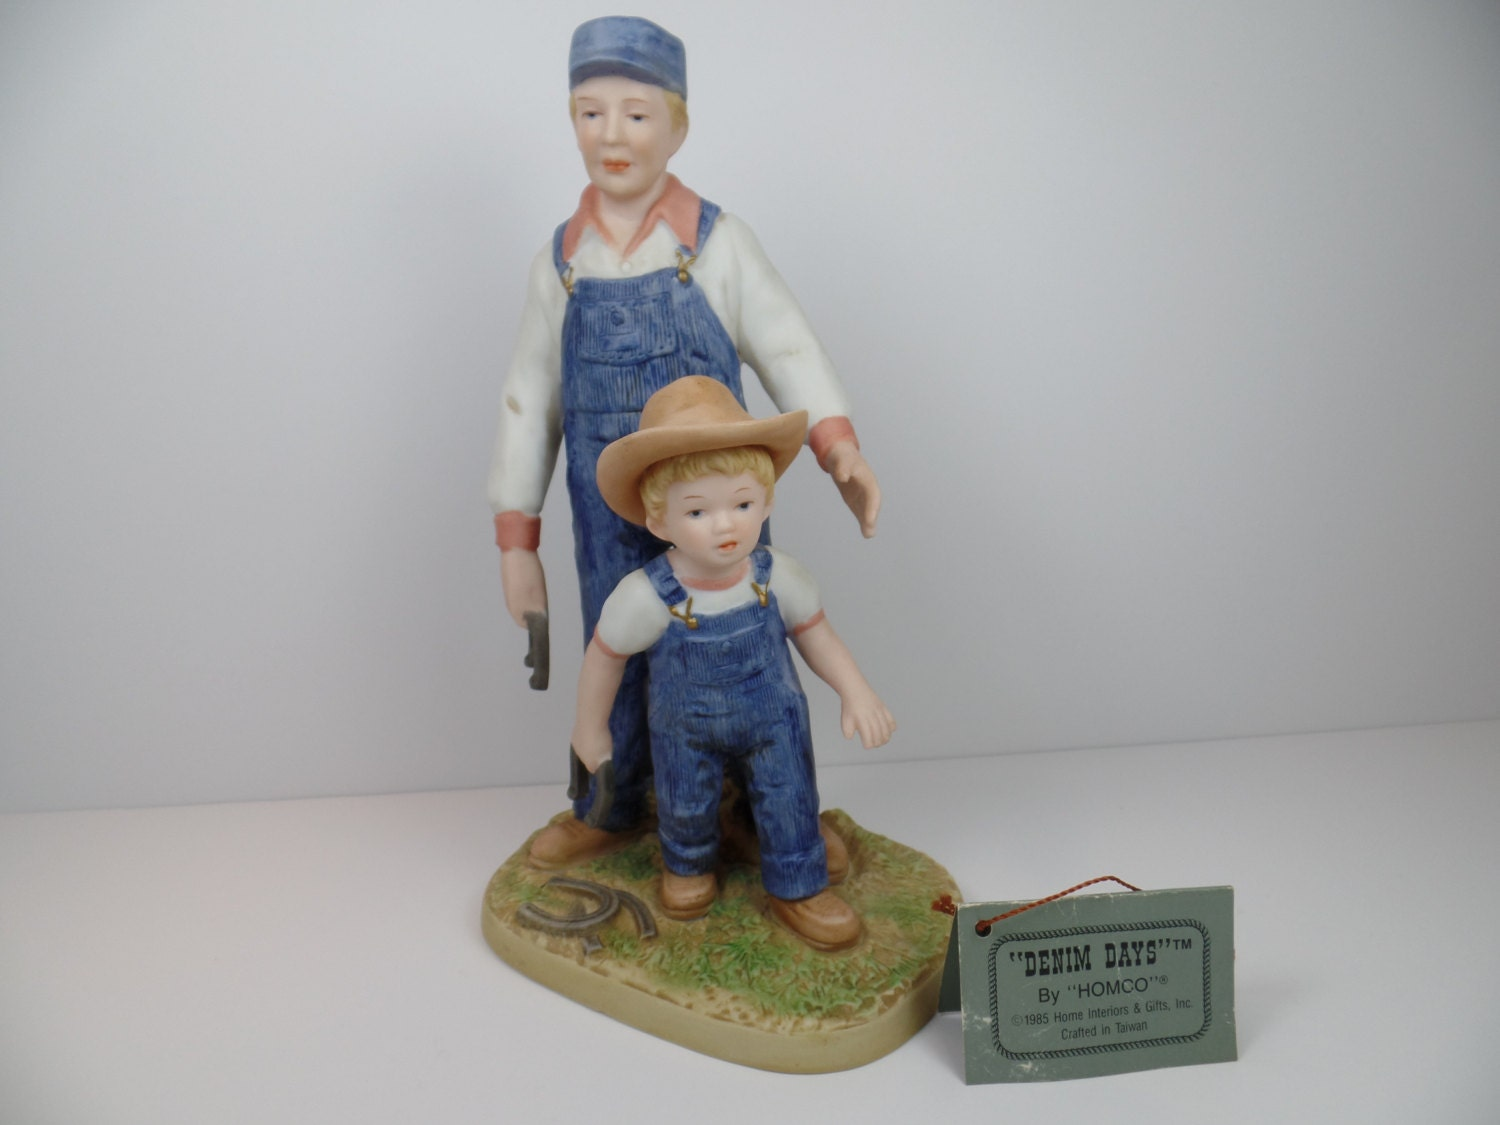 Home Interior Denim Days Figurines 28 Images Denim